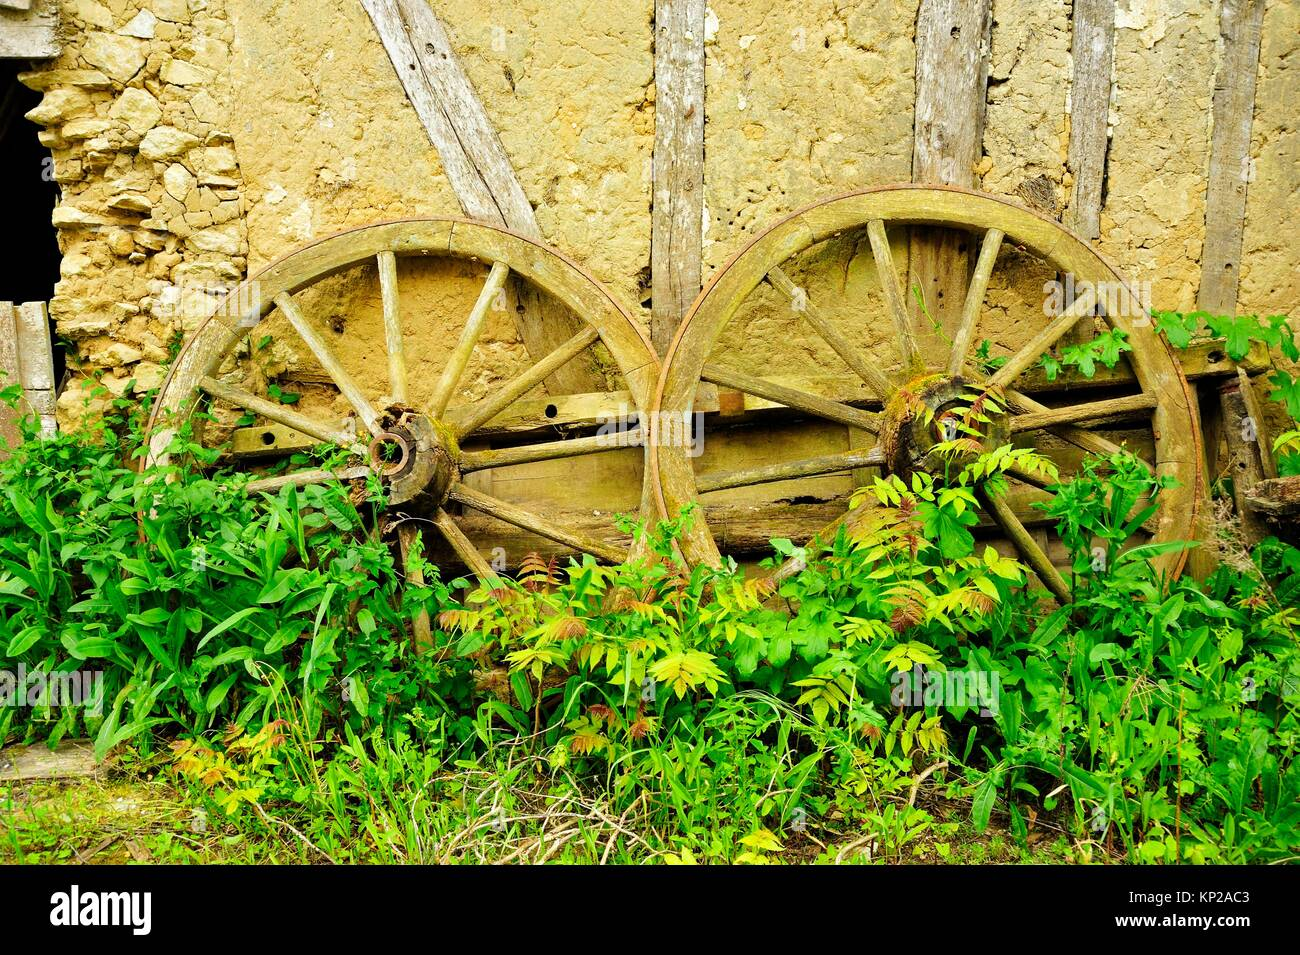 Old Wagon Wheels Stock Photos & Old Wagon Wheels Stock Images - Alamy